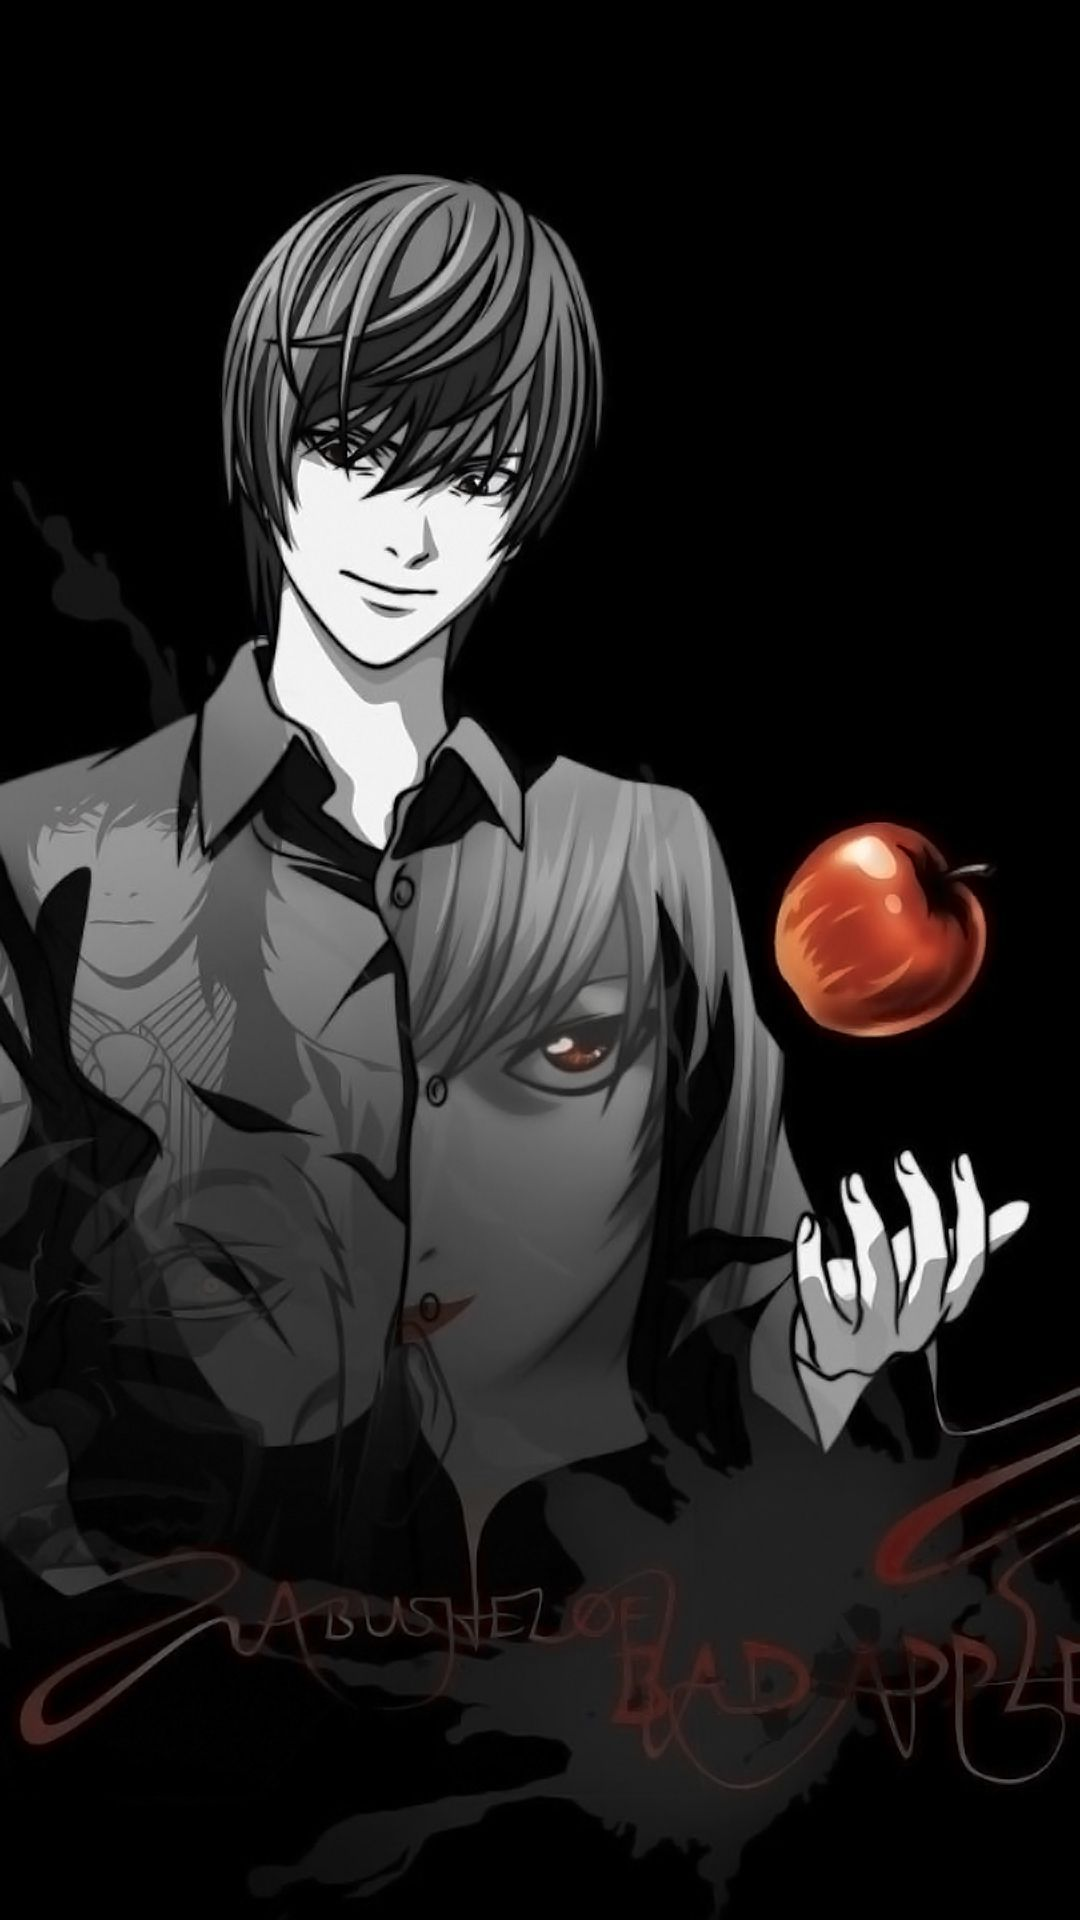 Light death note Samsung wallpaper Anime and Manga ️